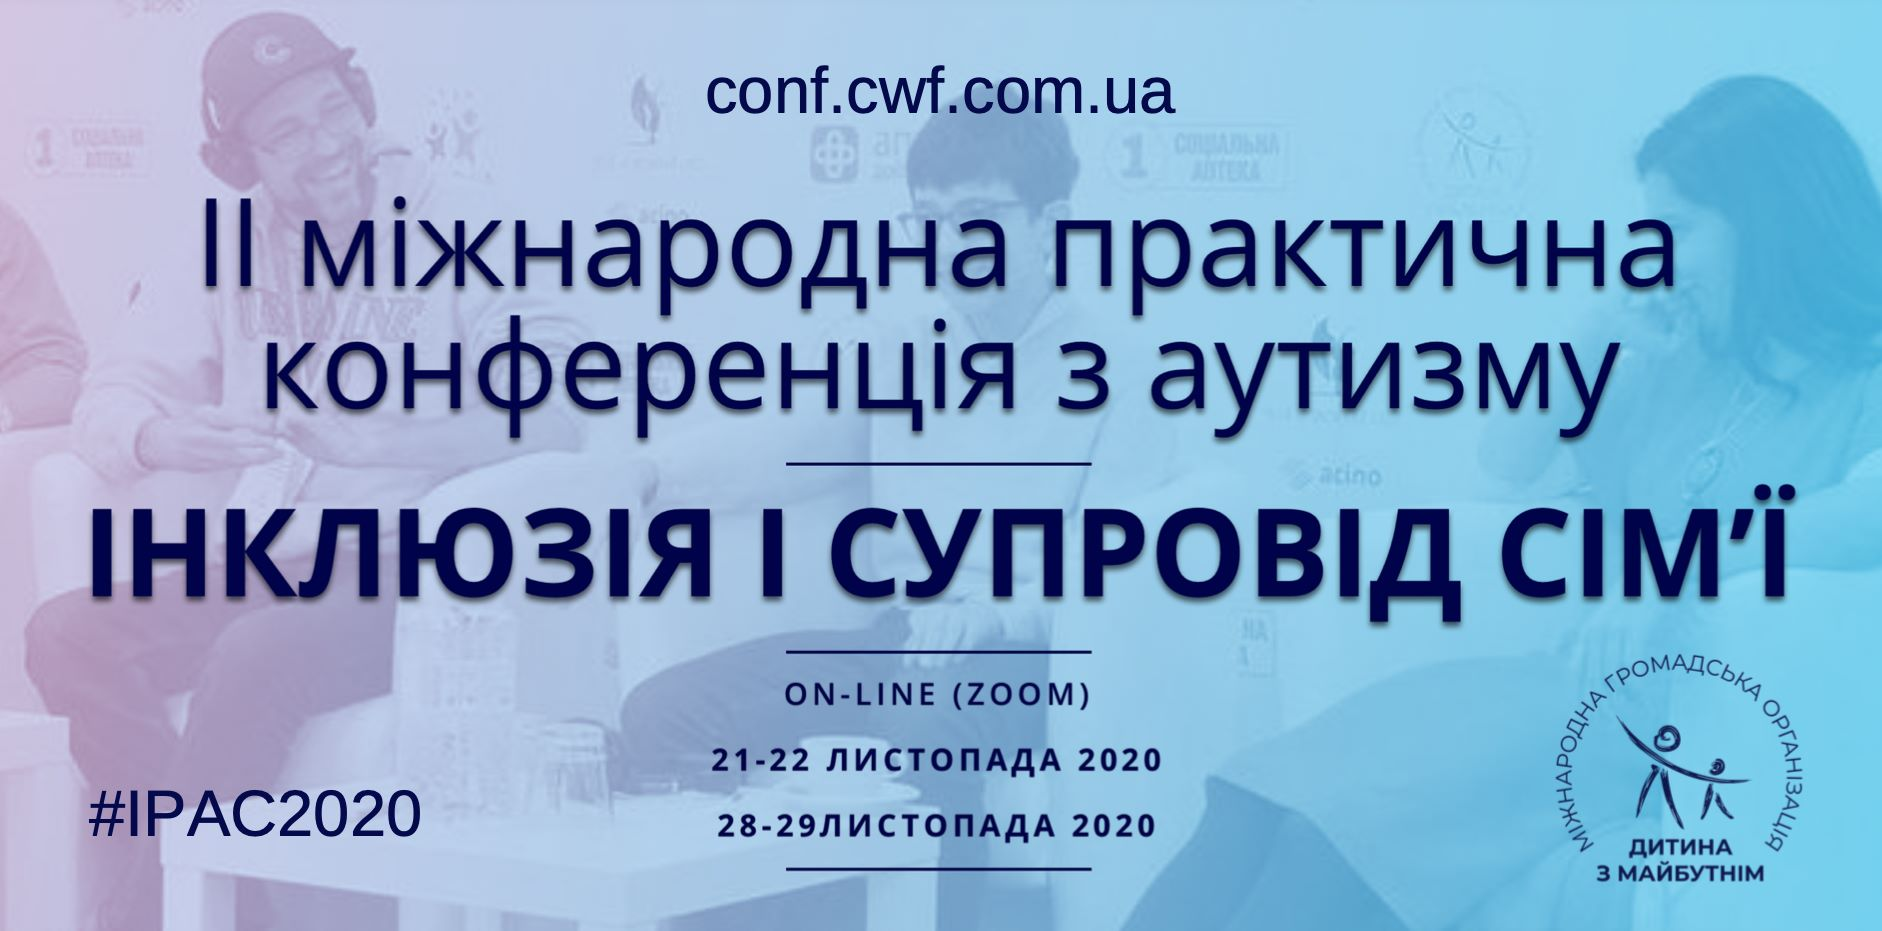 The Second International Practical Conference on Autism will take place in late November. This time in online format